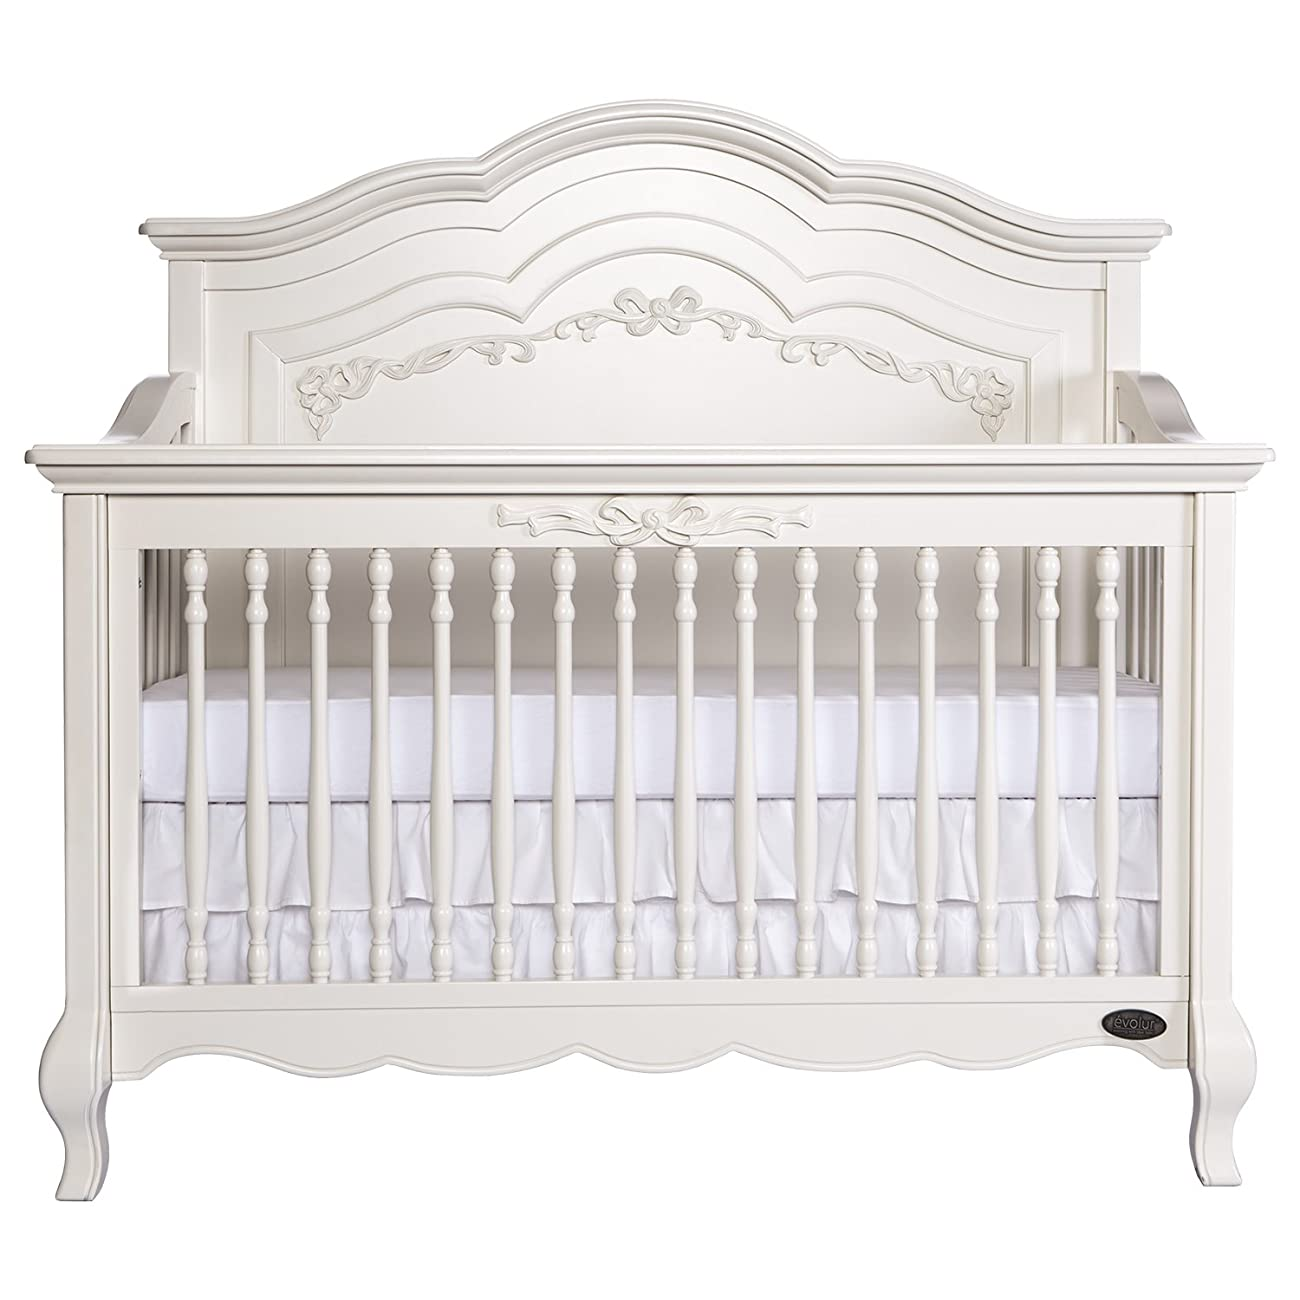 Evolur Aurora 5-in-1 Convertible Crib, Ivory Lace 0